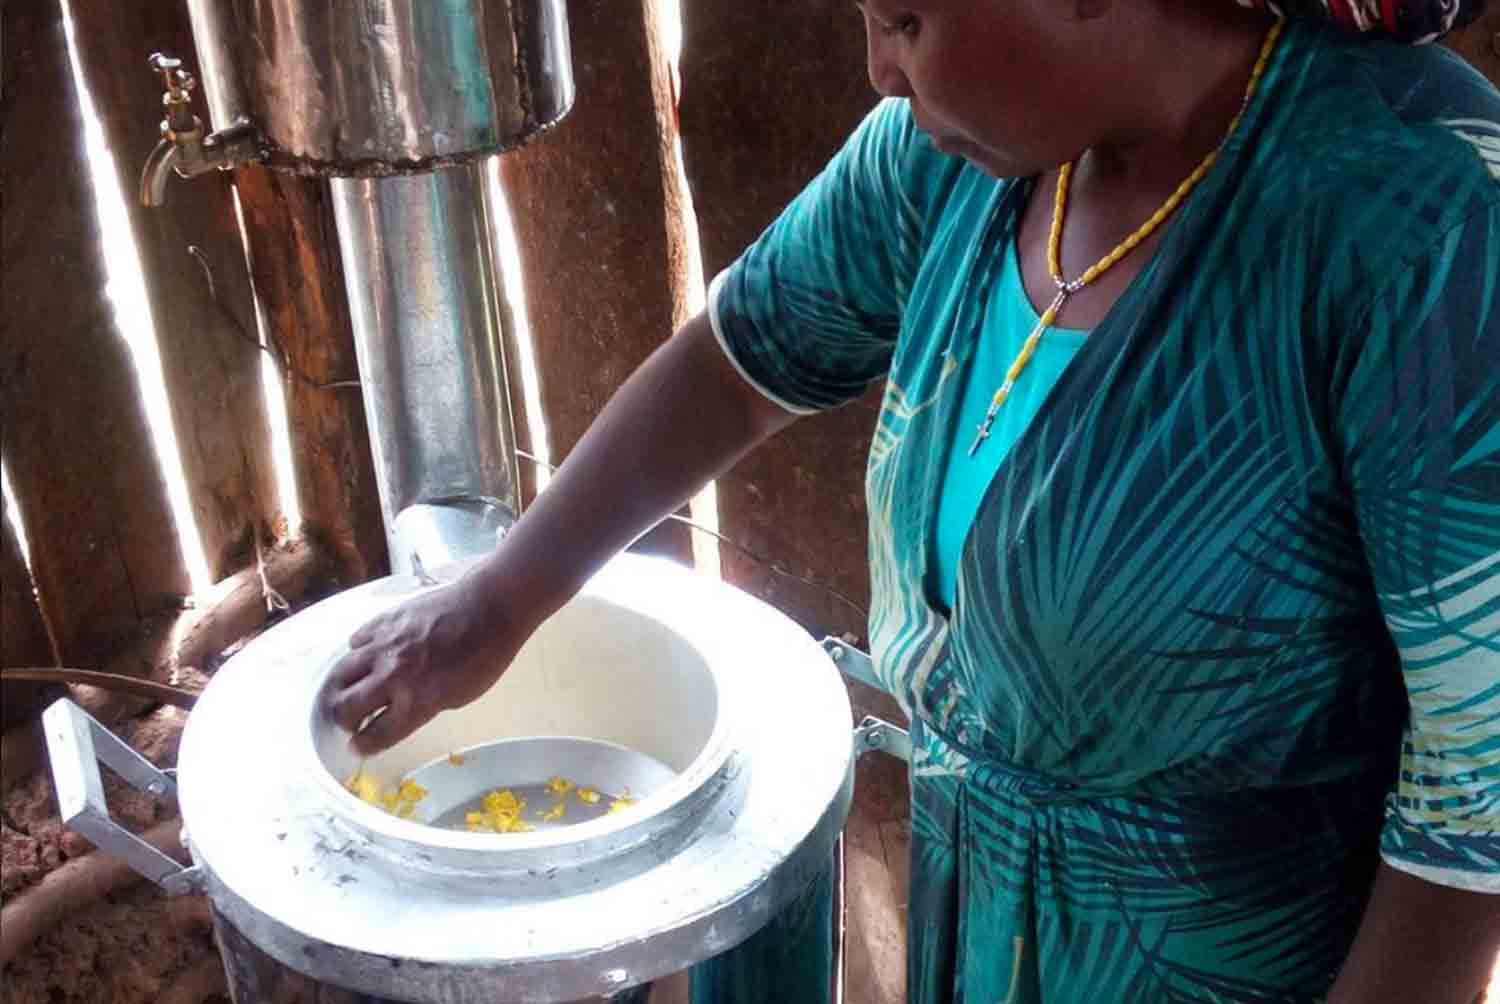 TERESA: MOTHER of KIBWOTT & CHEBET - both children suffered severe injuries, one losing 5 fingers from accidents with the cooking fire | NAKURU